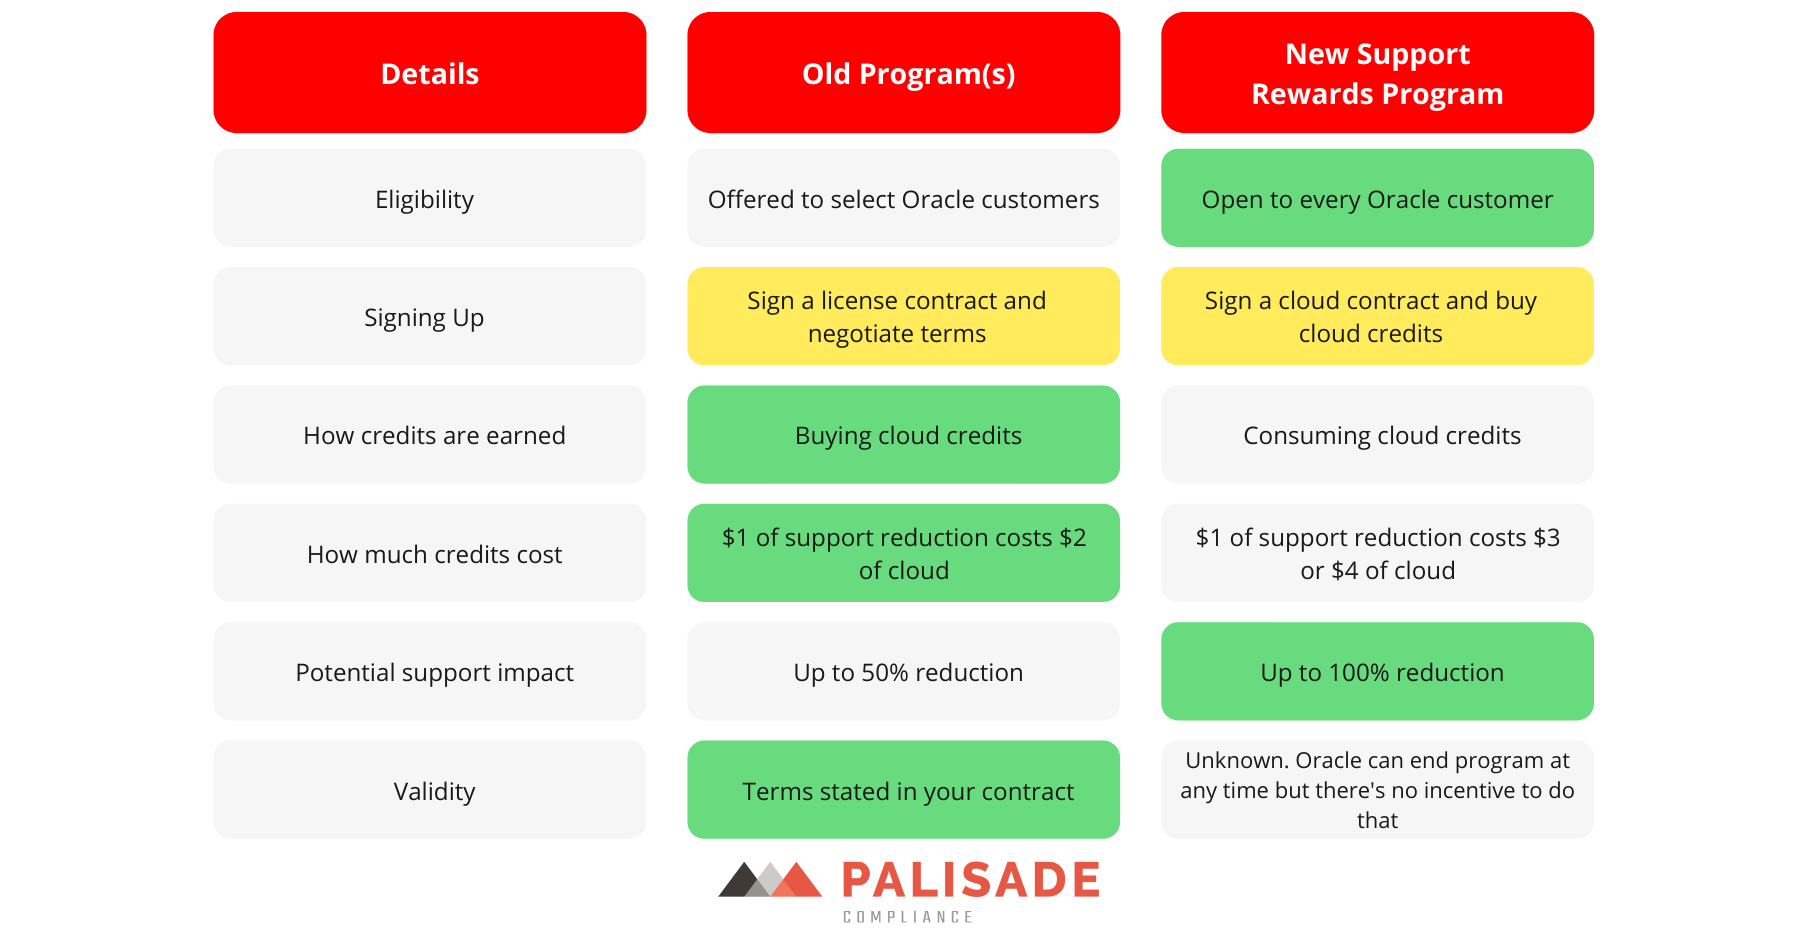 oracle support rewards vs old programs